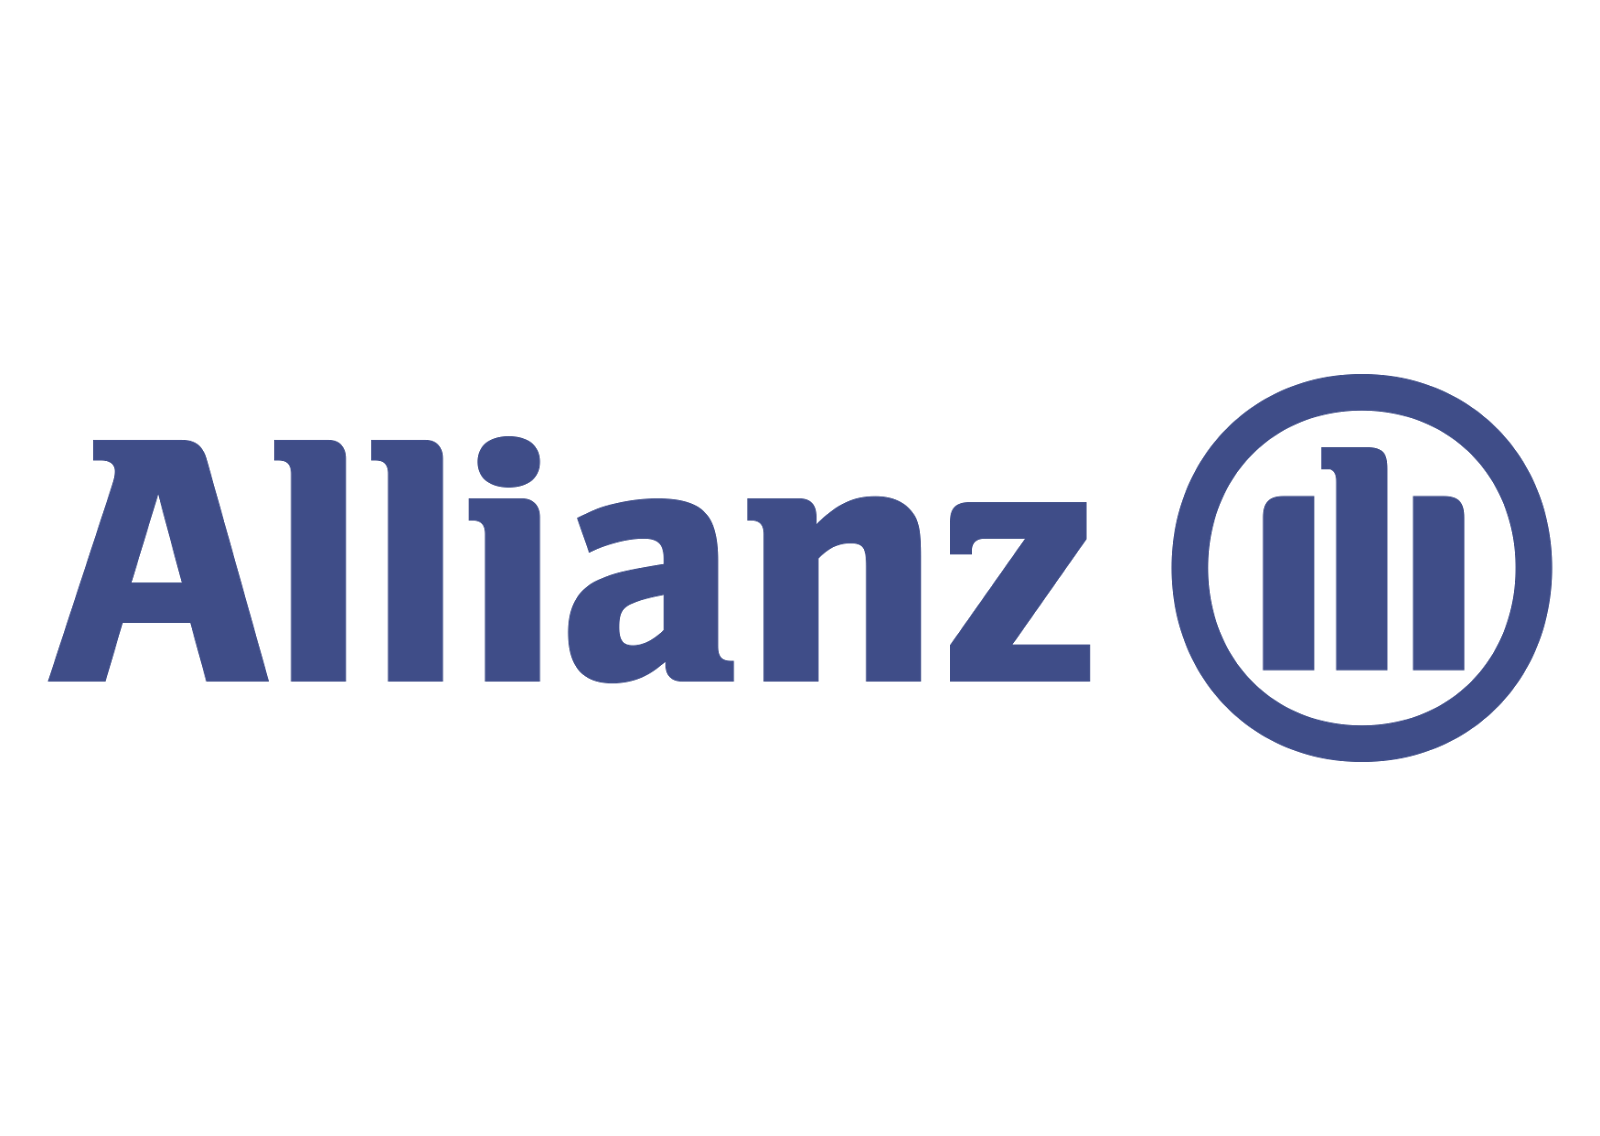 Allianz Logo Vector Allianz Logo Vector Download